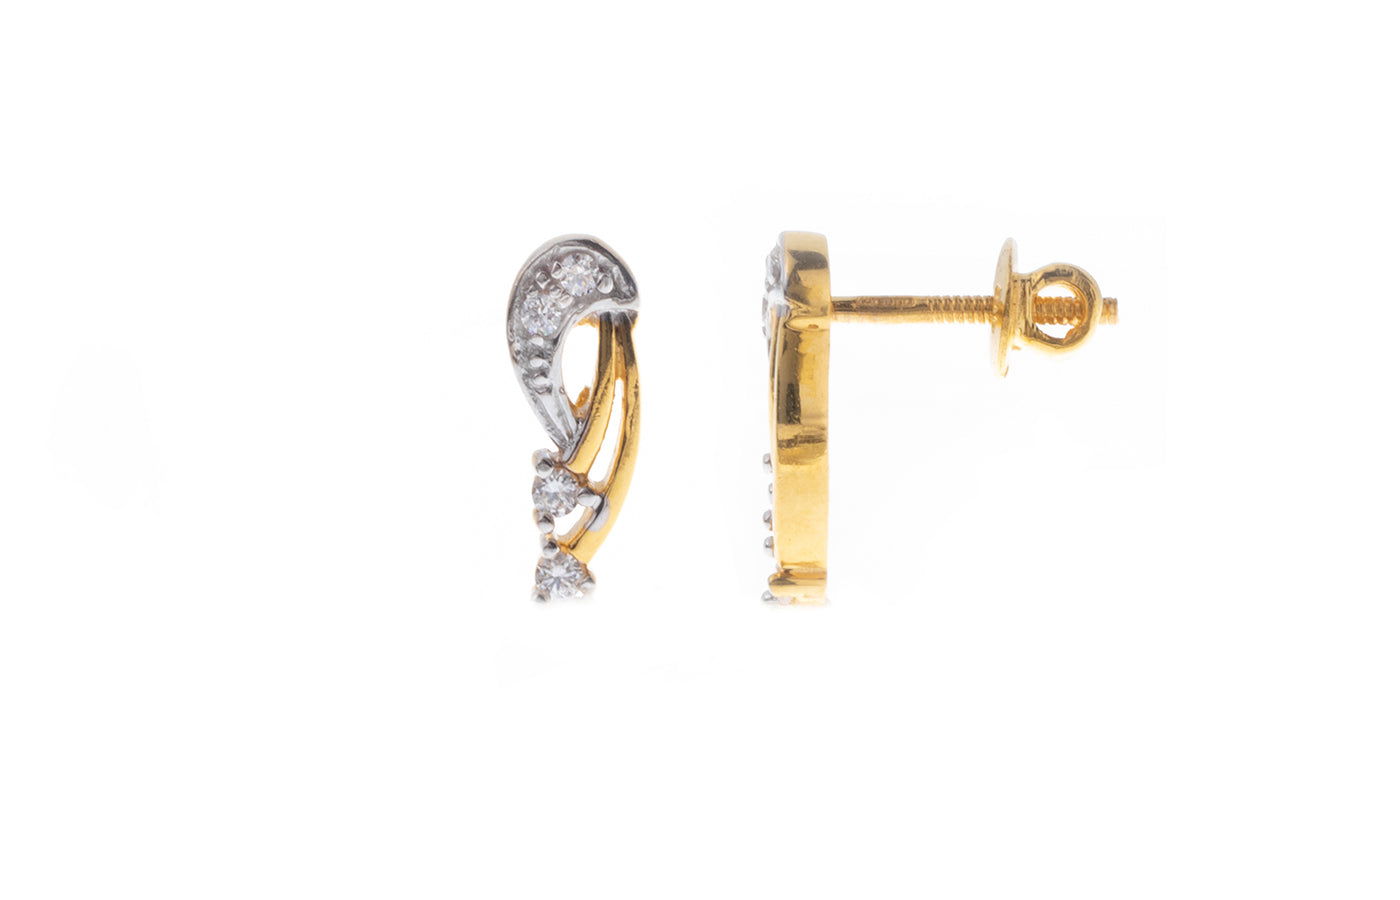 22ct Gold Stud Earrings set with Swarovski Zirconias (3.19g) ET7190